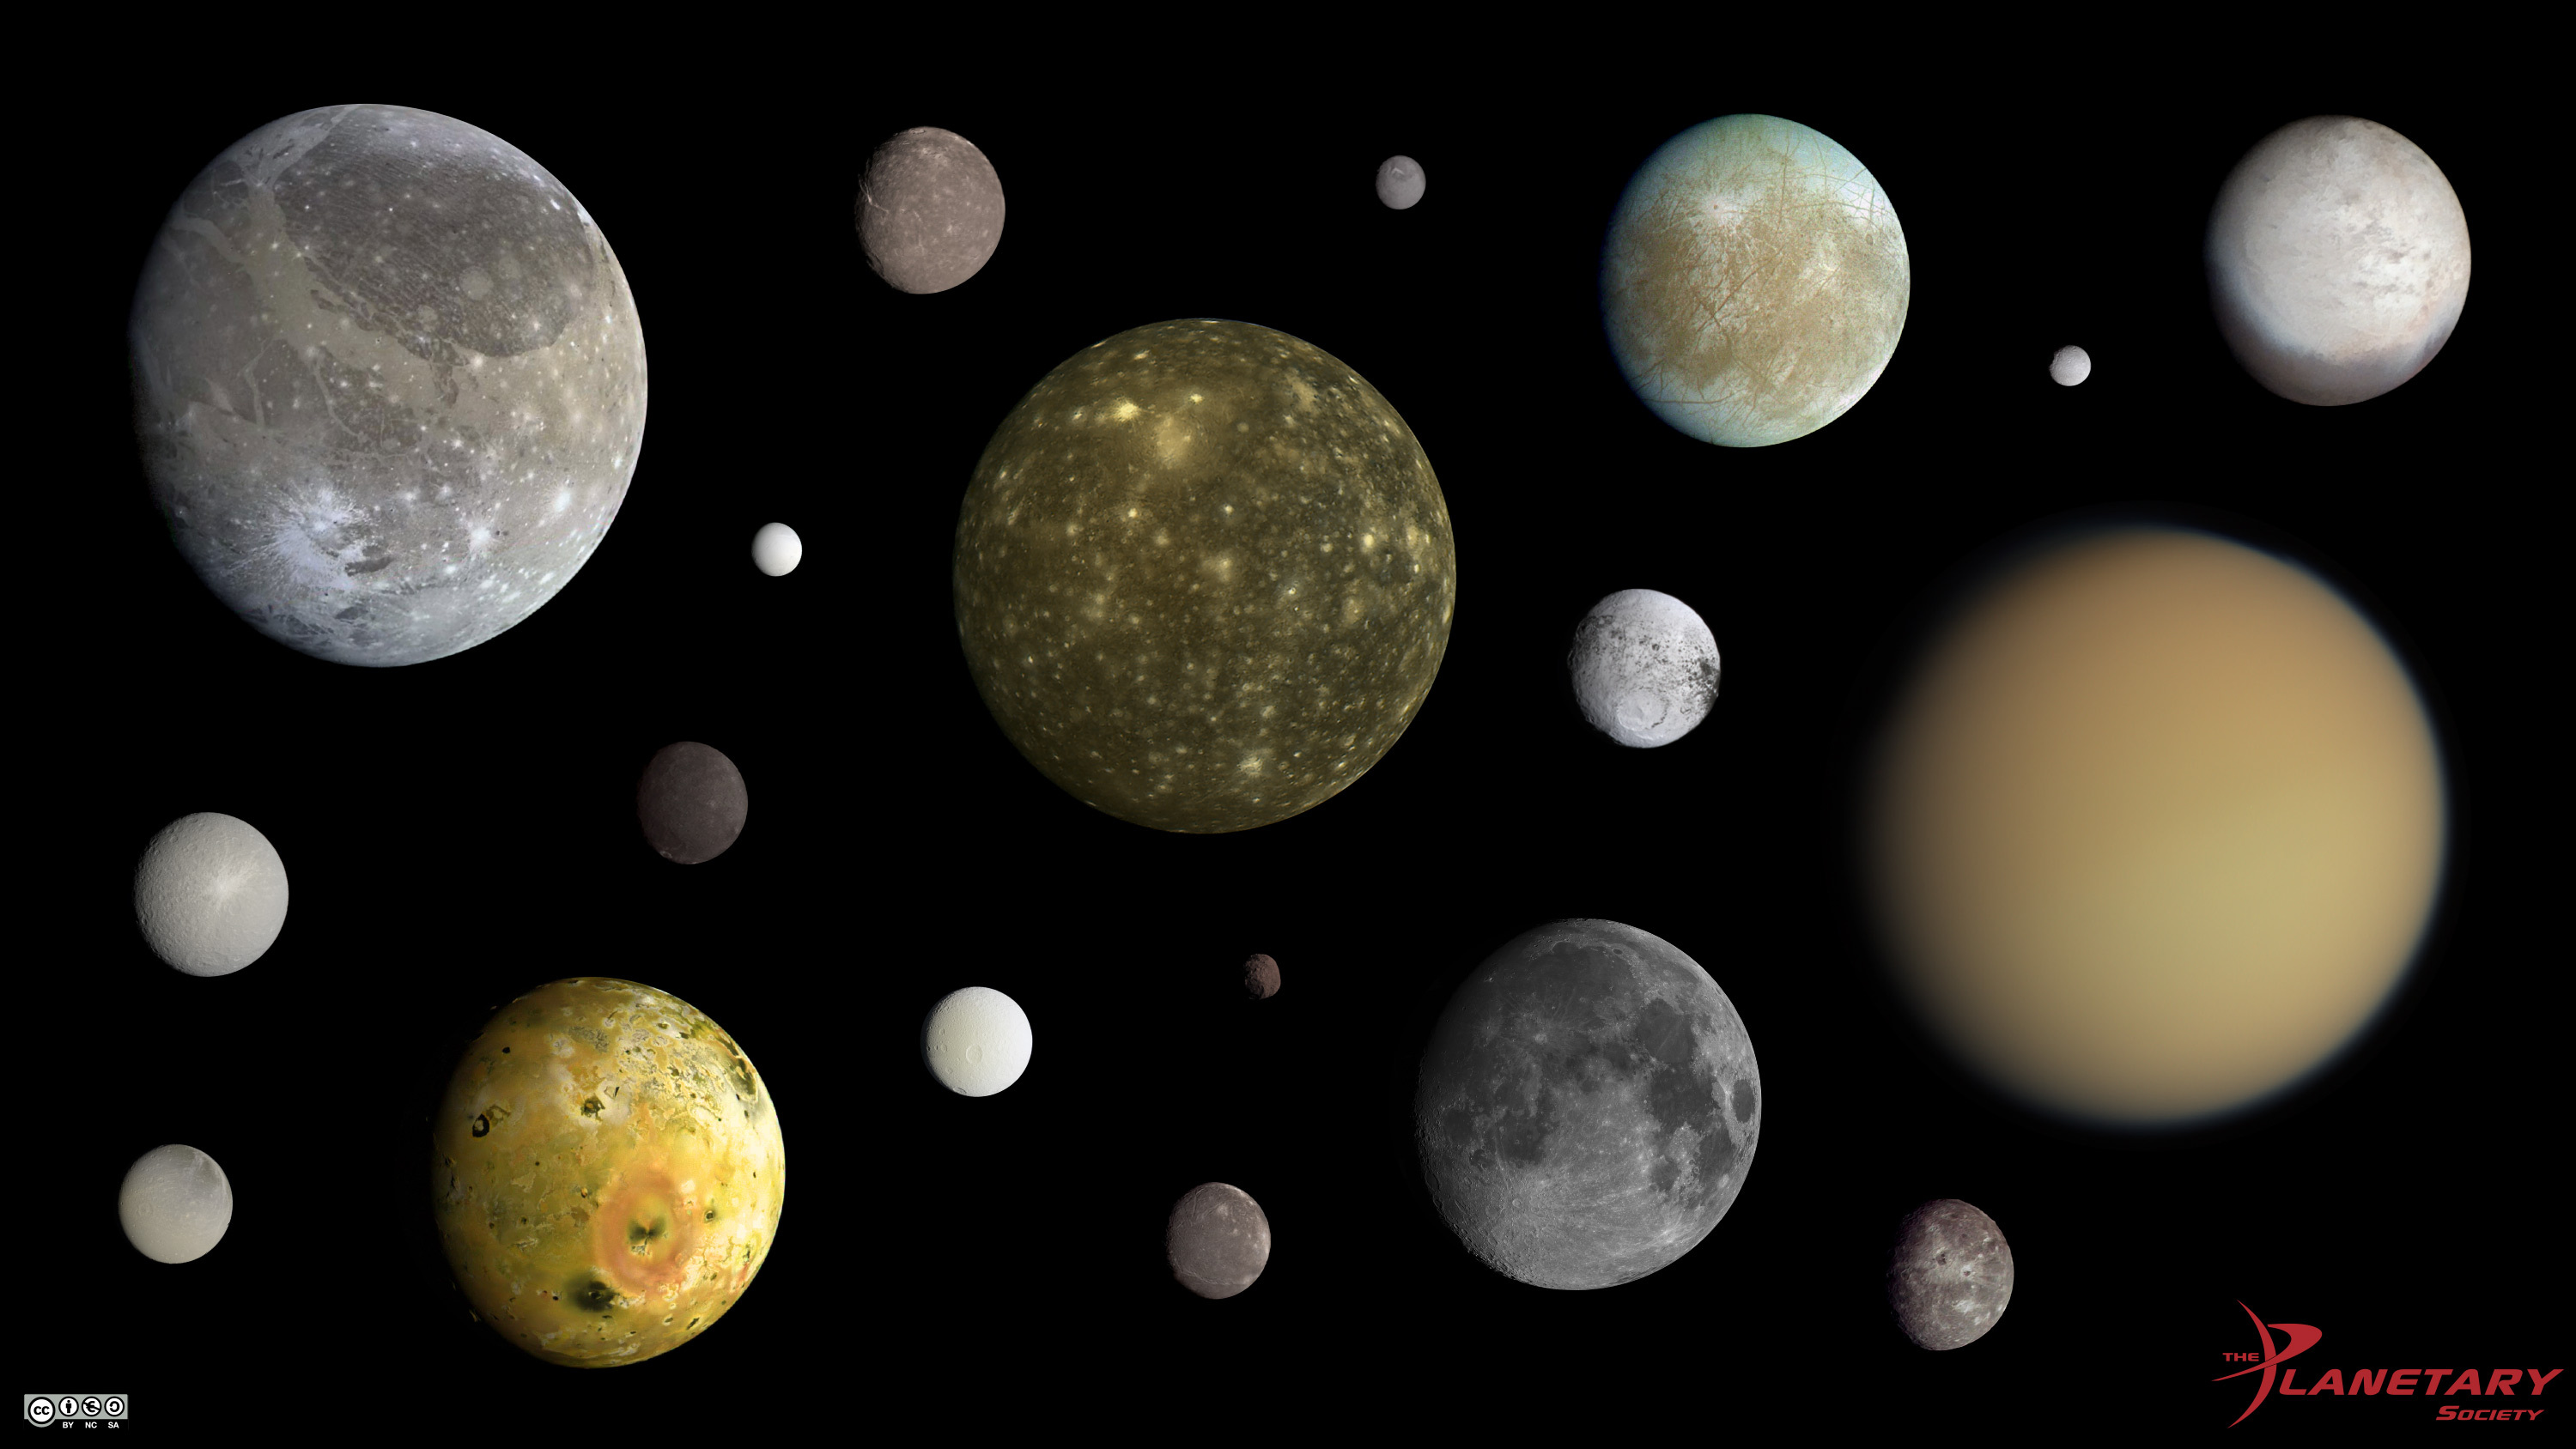 planets moons labeled - photo #16